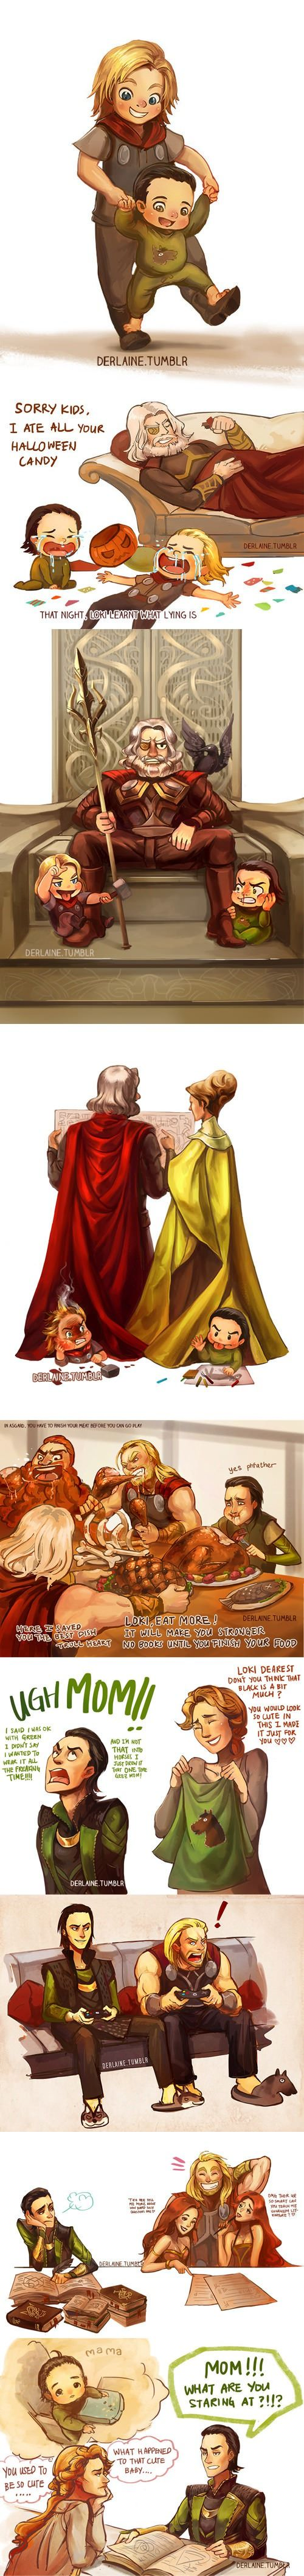 Loki's childhood - I love this artist's stuff! XD